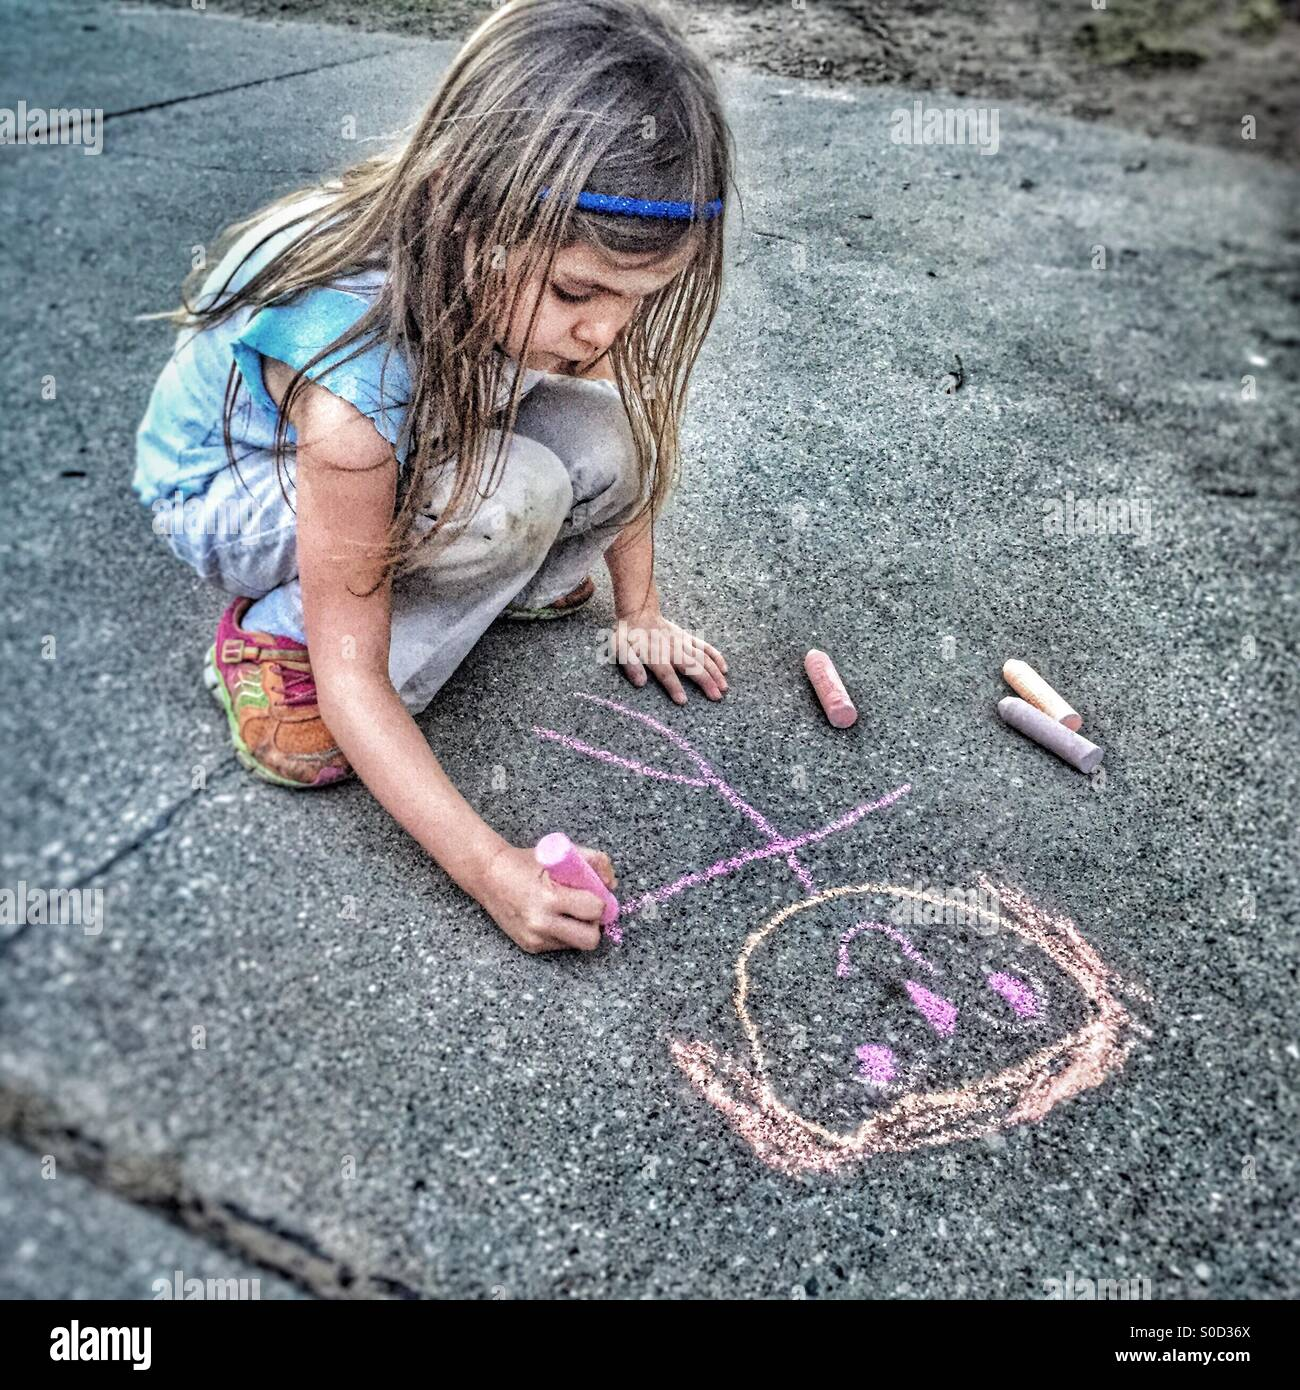 Girl drawing figures with chalk on a driveway - Stock Image